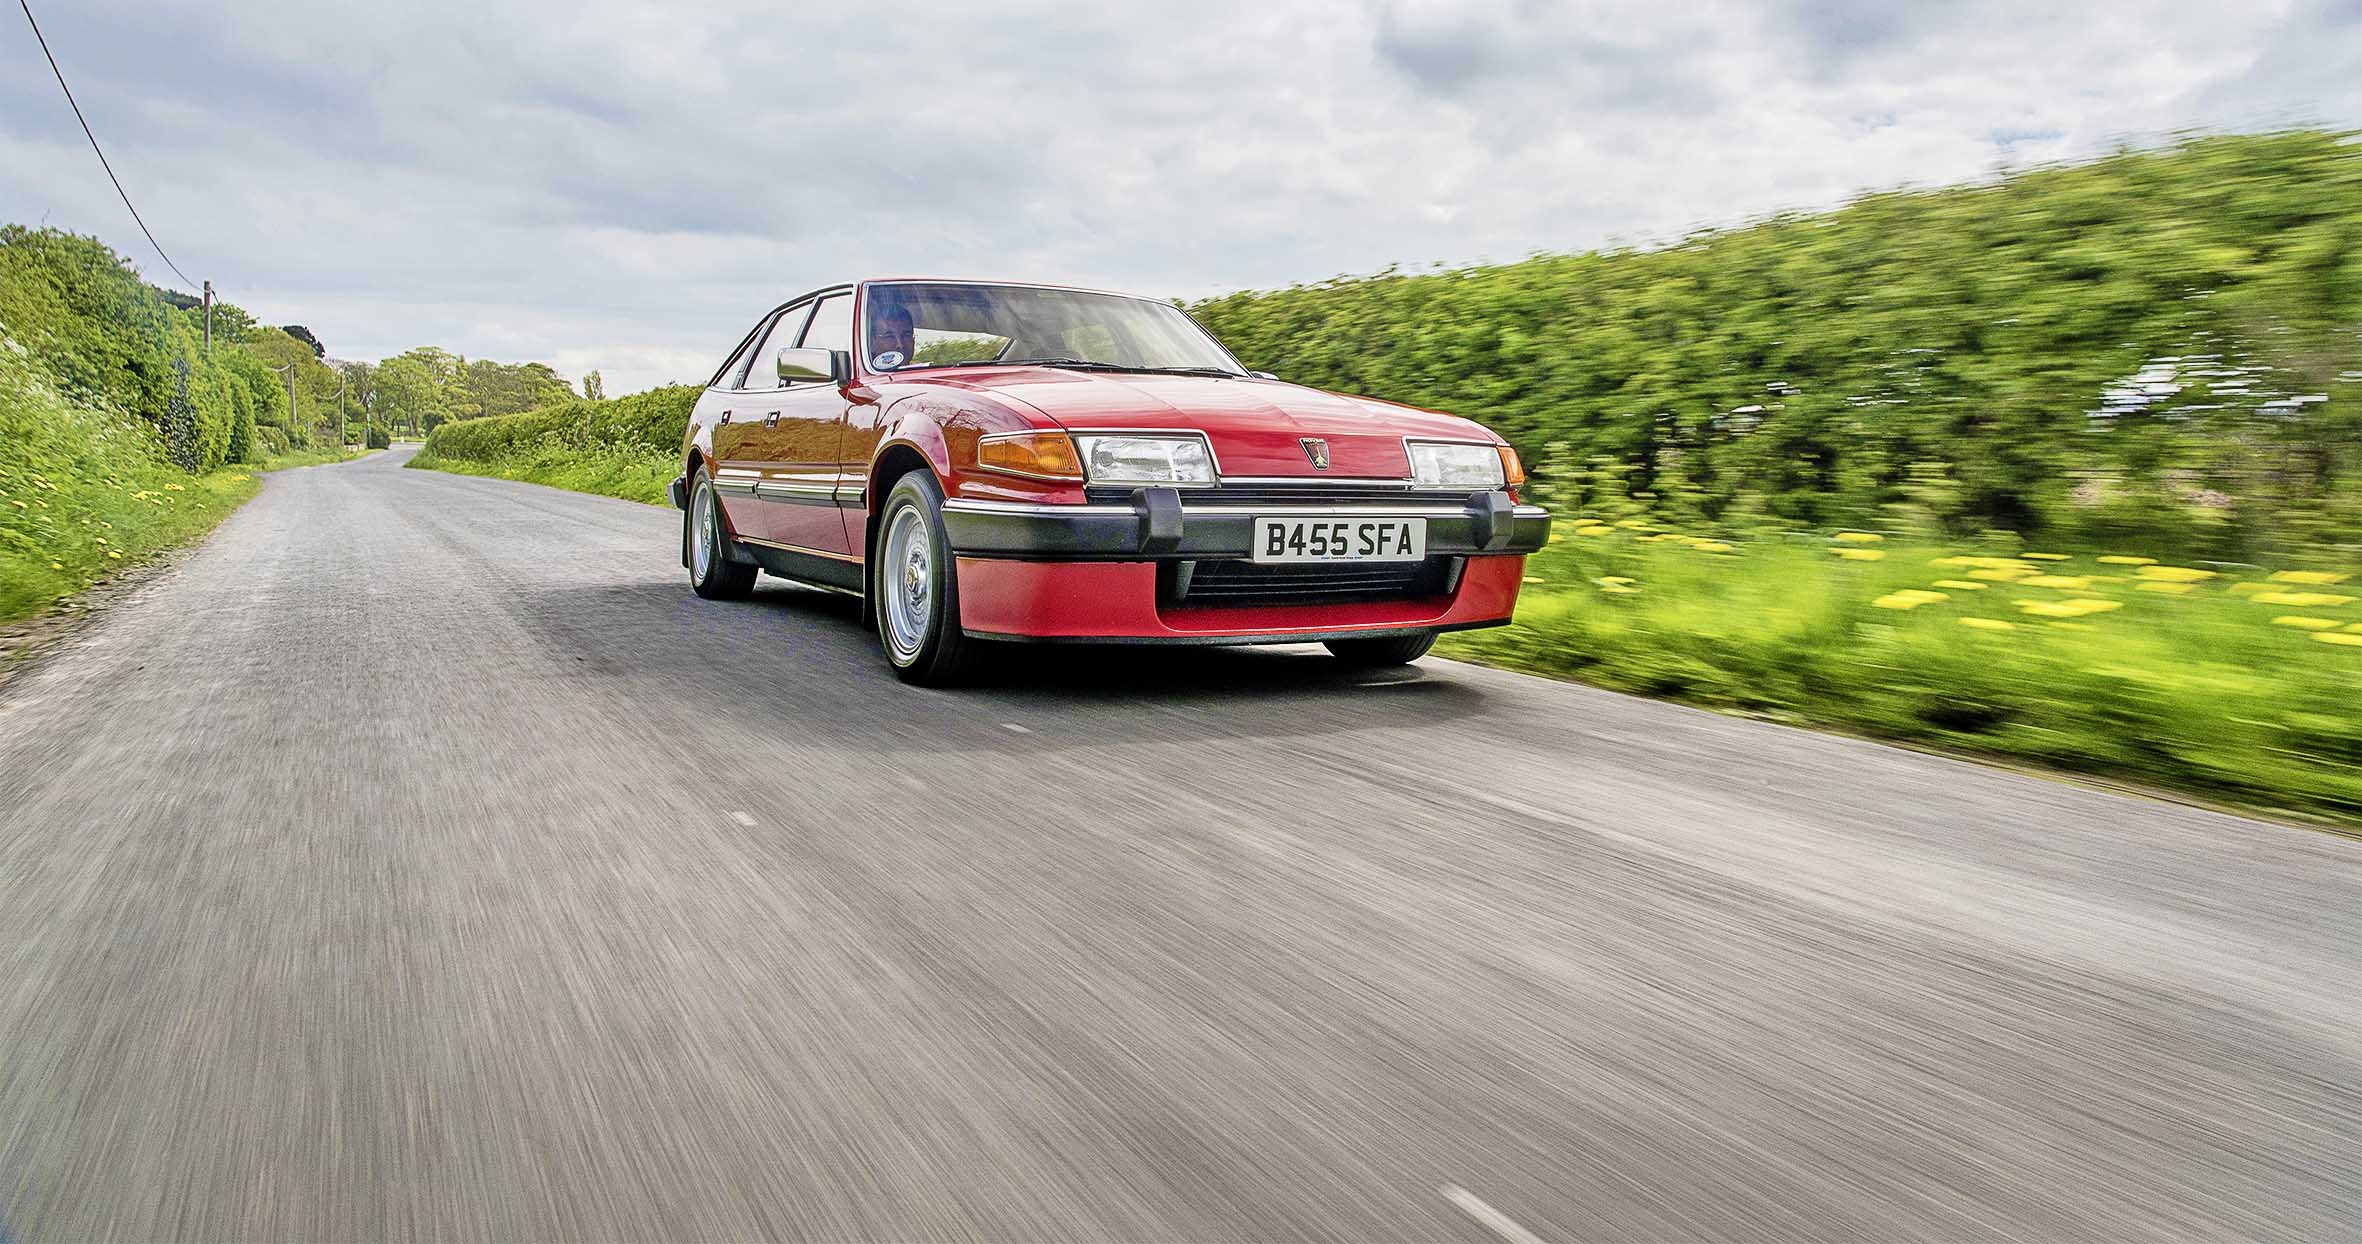 John says he can remember the first time he heard his SD1, sat on his drive with the V8 burbling away. He fell in love with it there and then. He borrowed the money and paid £1700 for the car. 'It was a runner with scabs and the odd suspension squeak,' he says. 'But had an amazing engine – £800 had been spent on brand new cylinder heads from RPI Engineering.'  He drove the car for a year before, in his own words, 'family things' got in the way; that included meeting his future wife Kathleen, establishing a career, buying a house and starting a family. During those two years the Rover was laid-up at his dad's home. And then… it was restoration time! Ready about it in the new issue of PC.